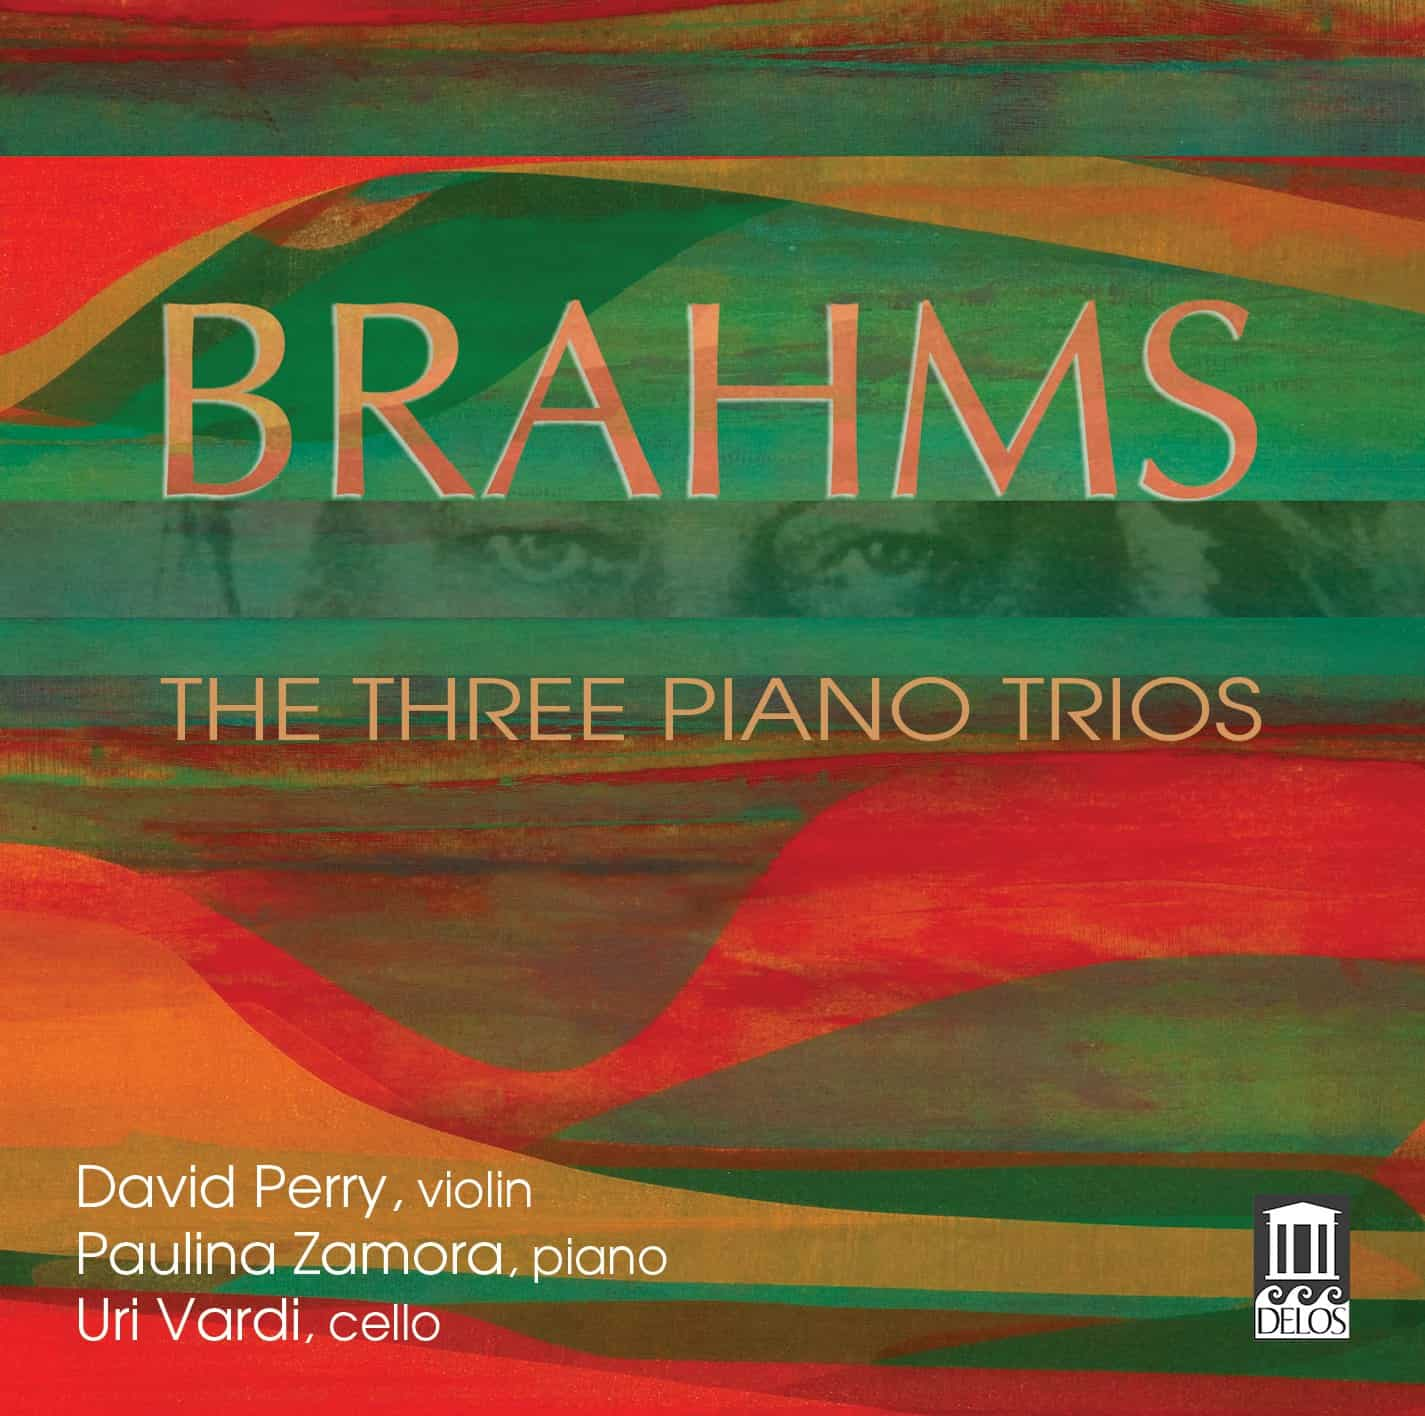 Johannes Brahms: The Three Piano Trios